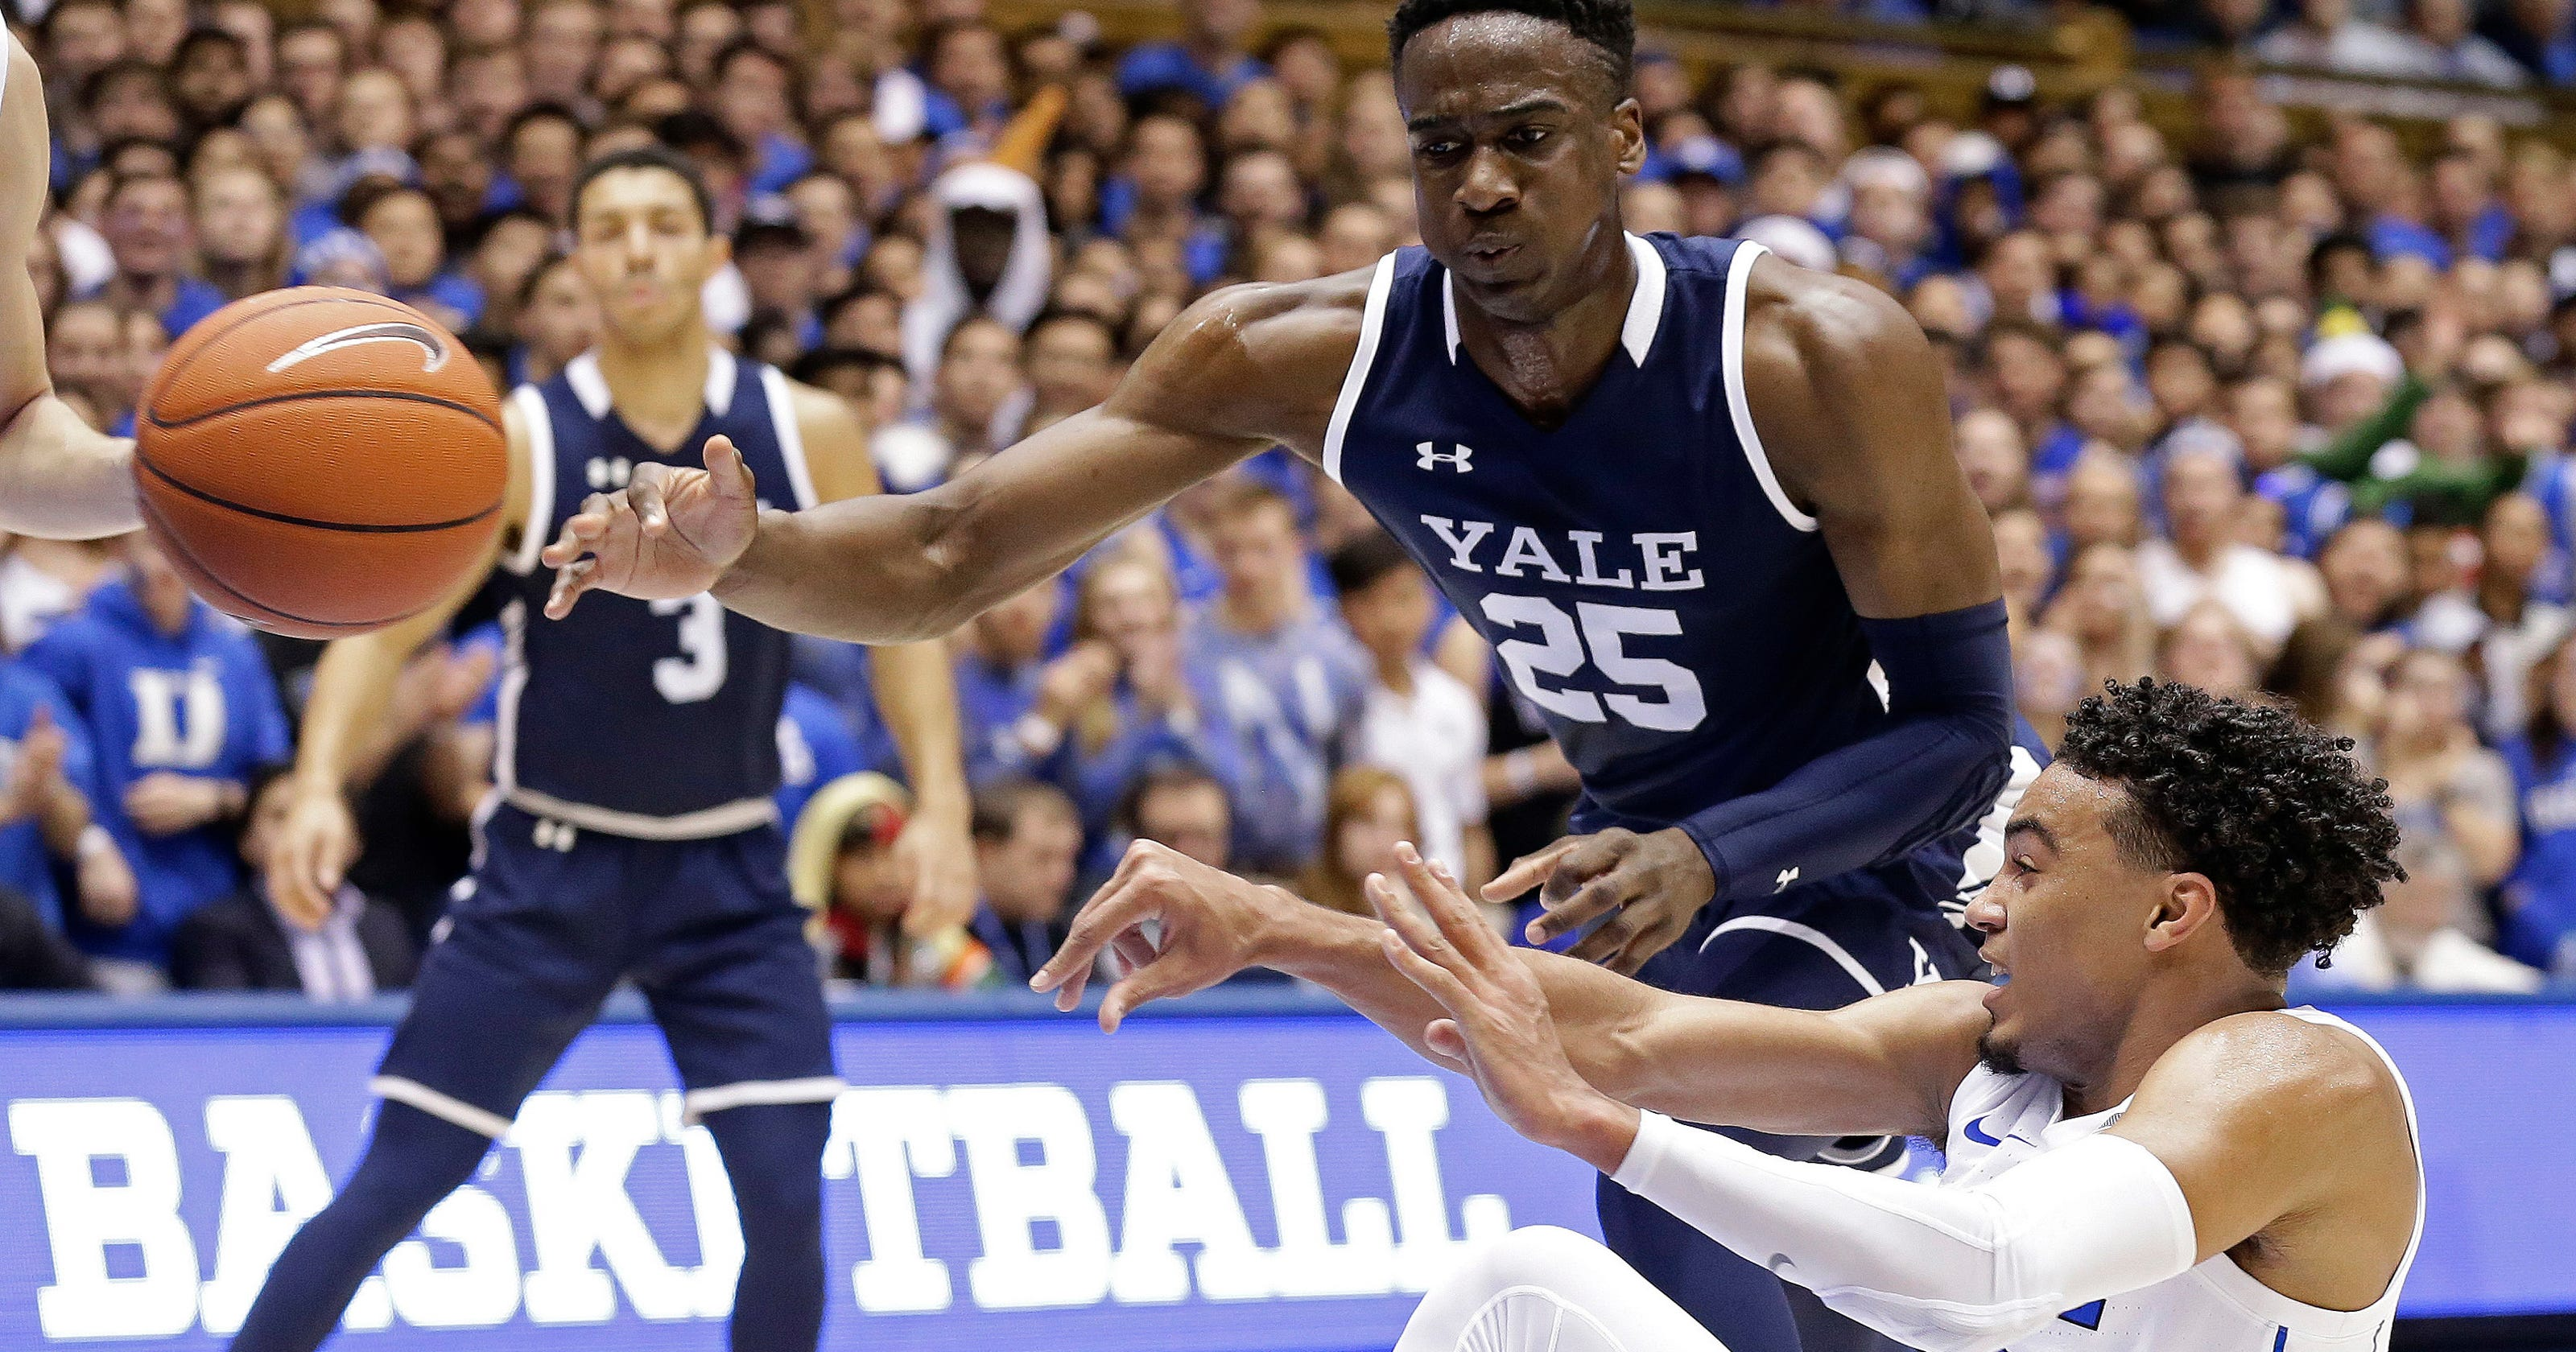 Yale Basketball: Facts about LSU's NCAA tournament opponent